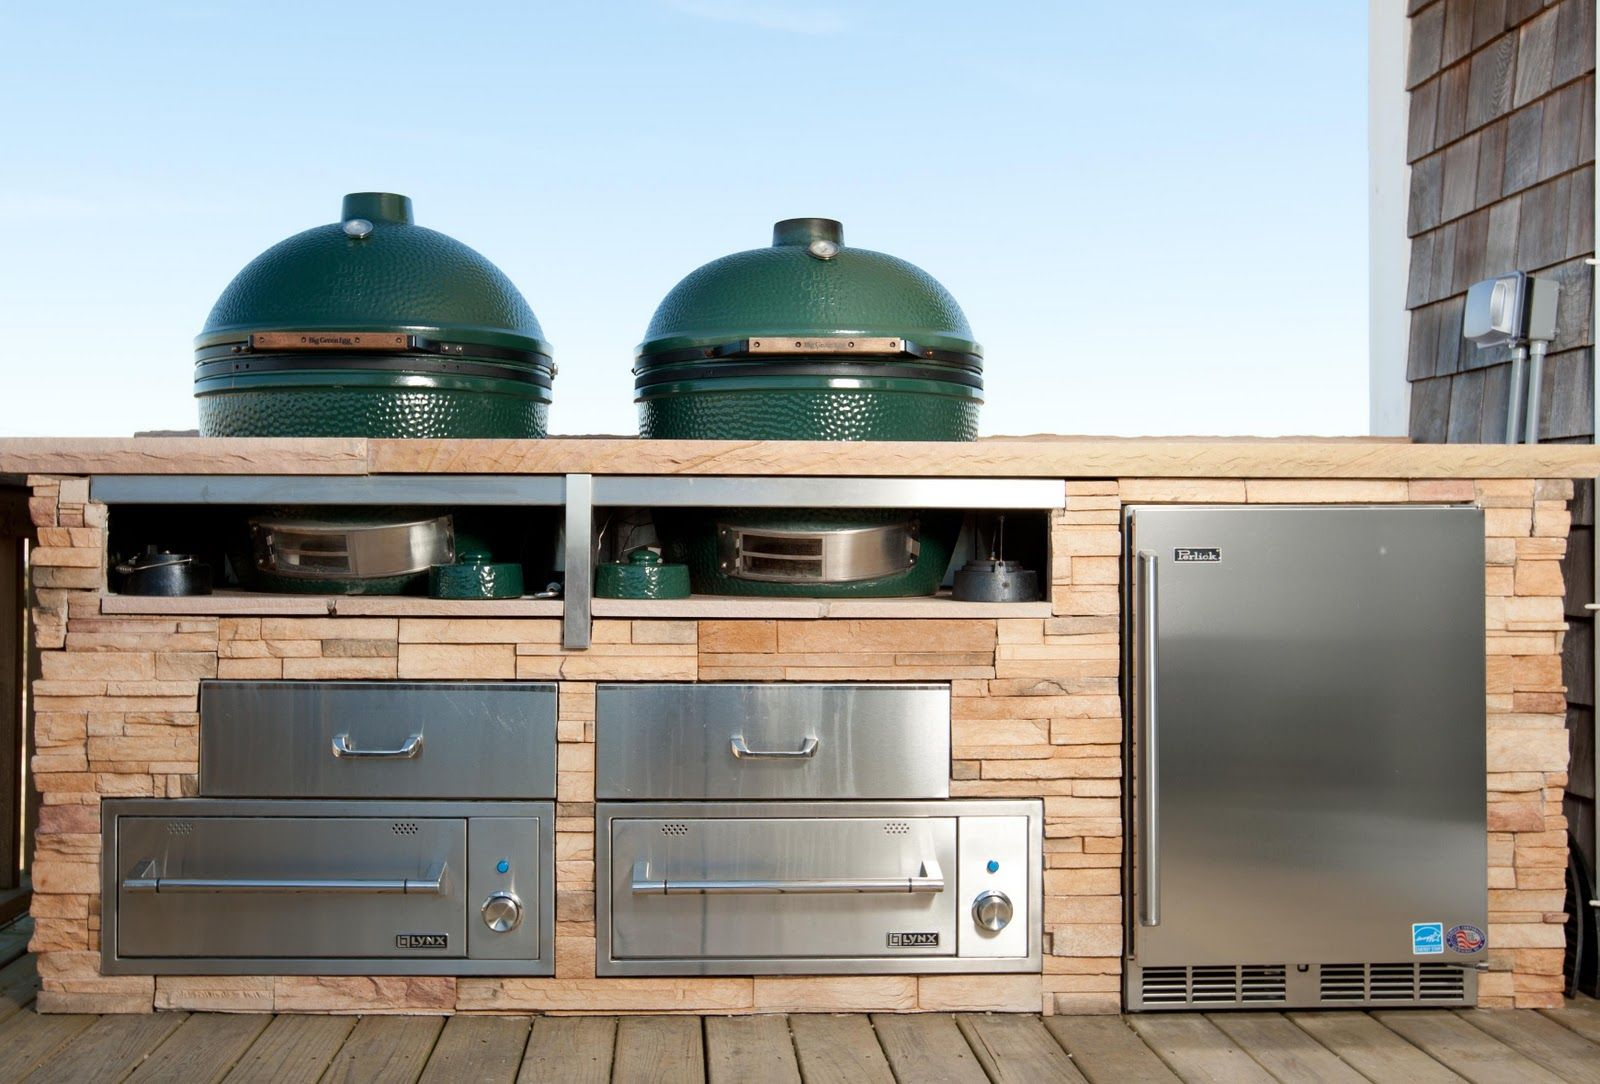 Pin By Alicia Spellman On Outdoor Cooking Big Green Egg Pizza Green Egg Pizza Big Green Egg Outdoor Kitchen